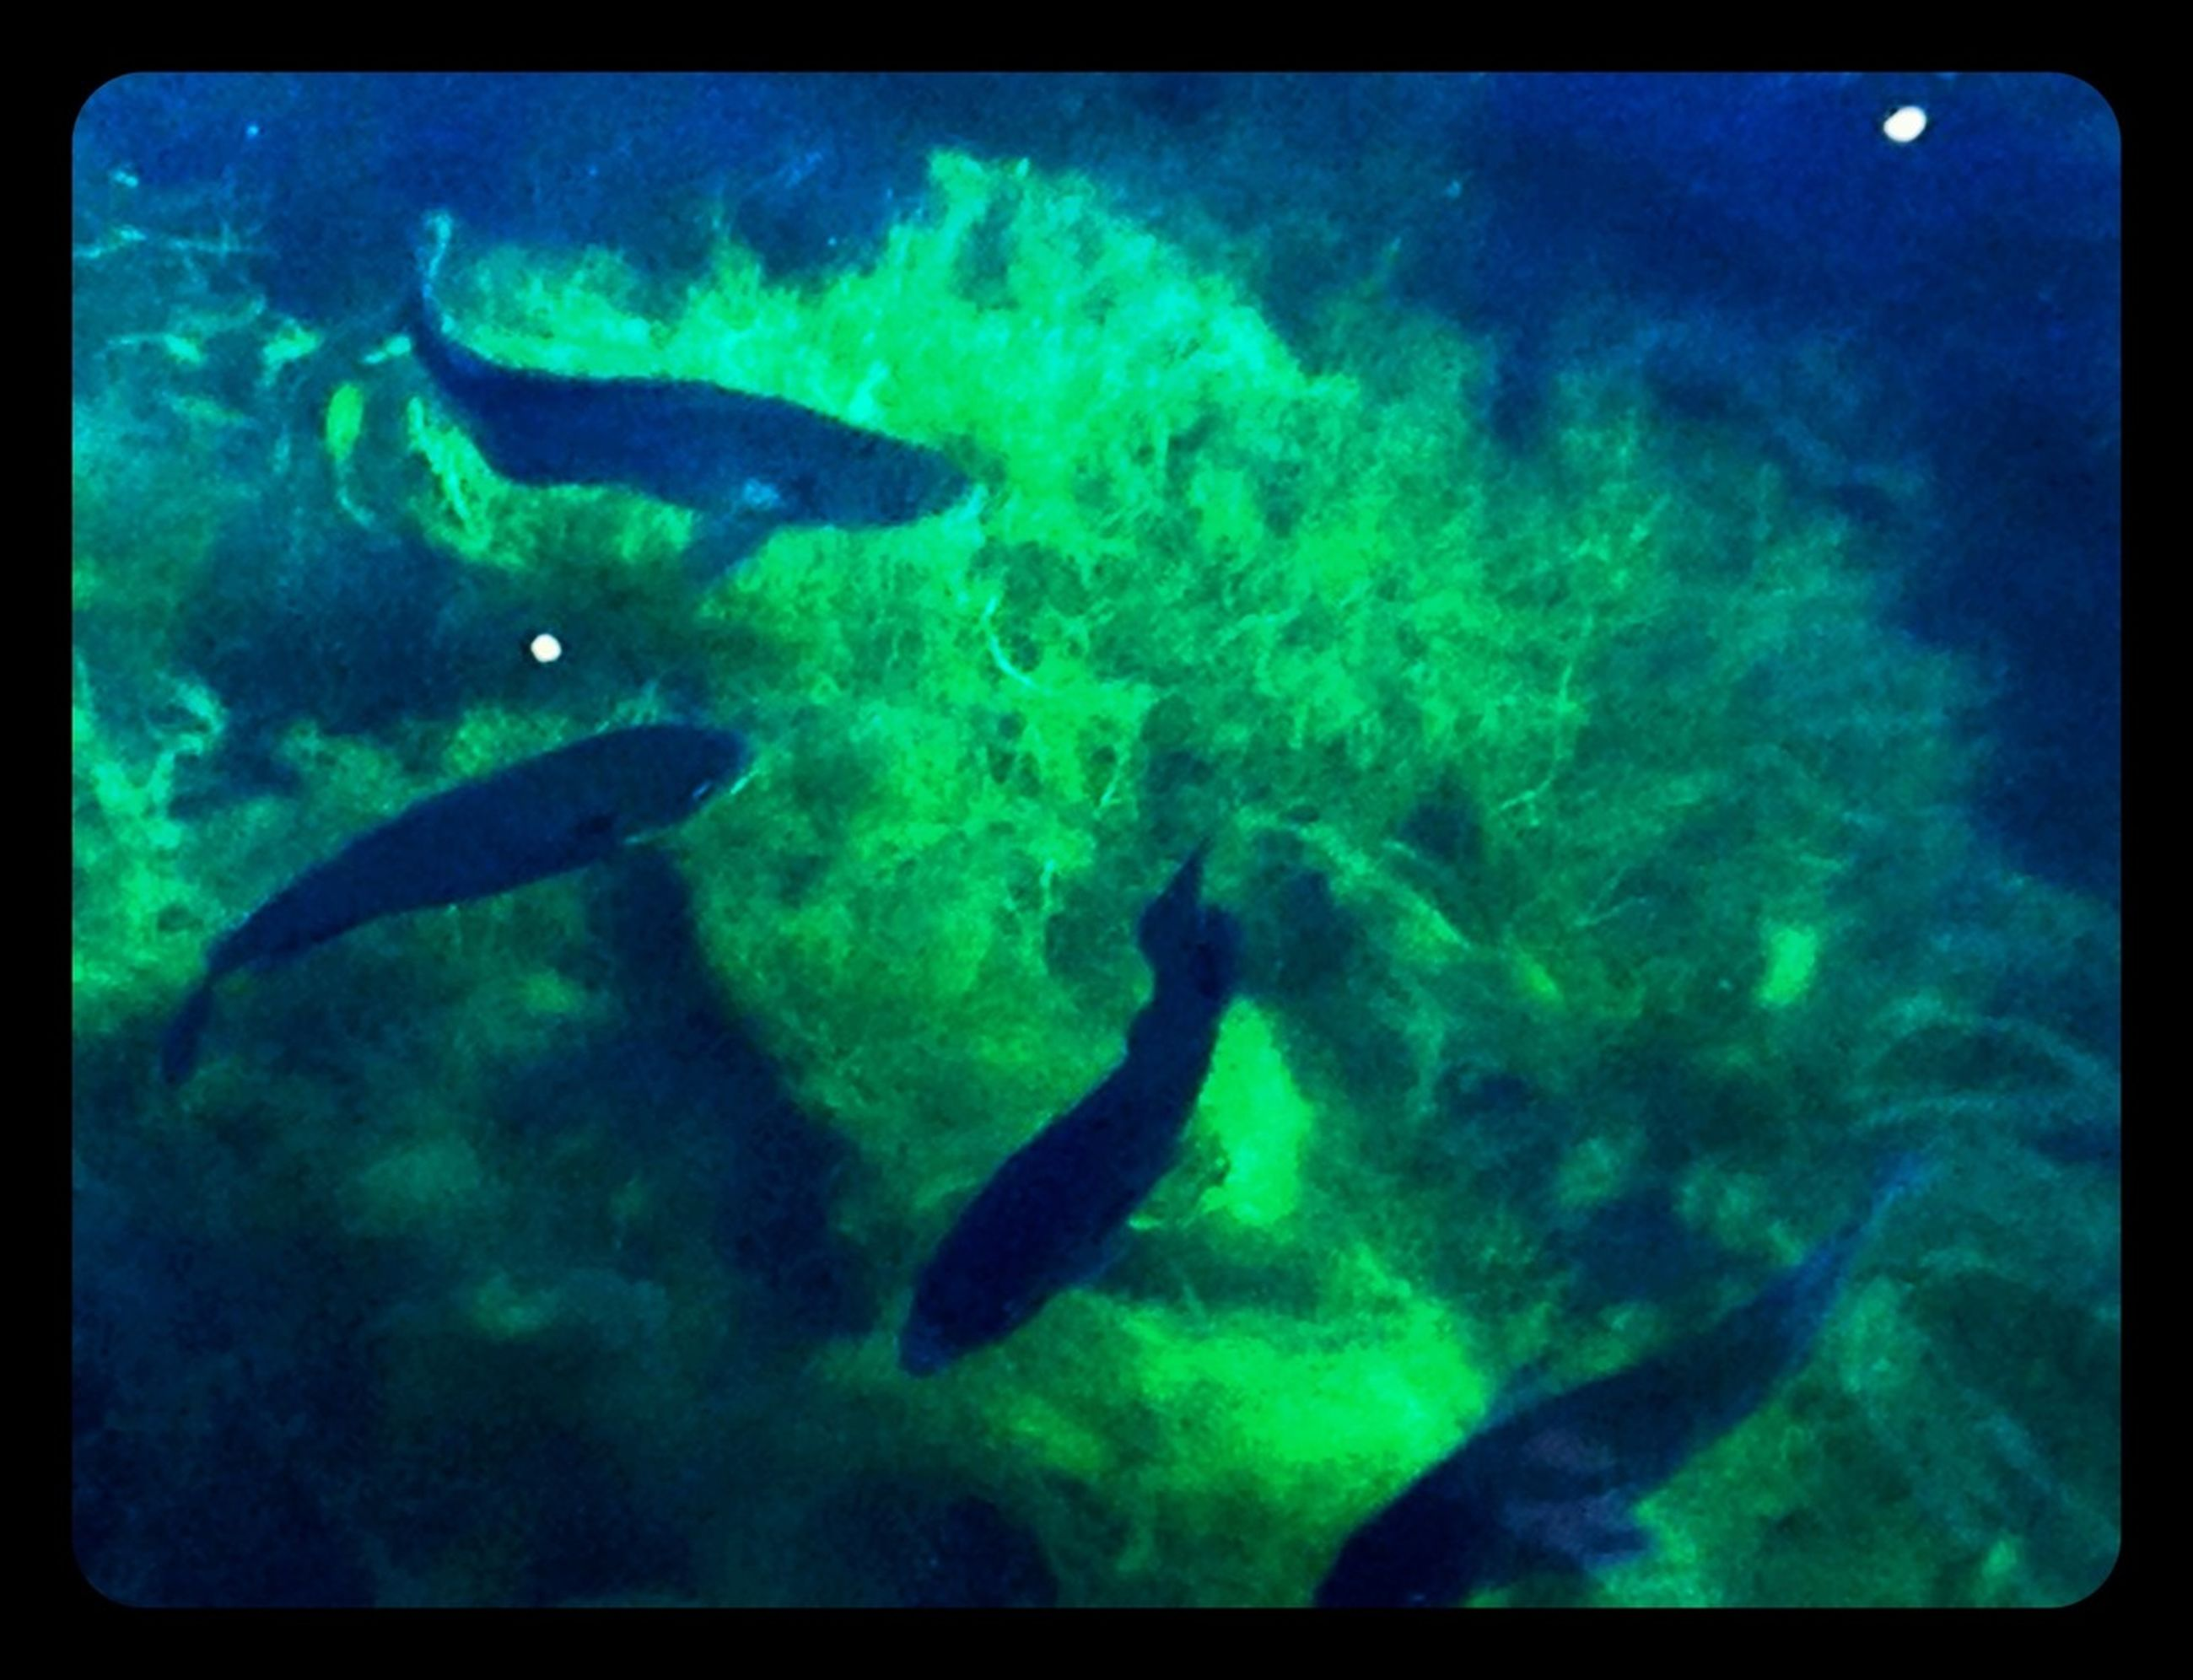 underwater, animal themes, animals in the wild, wildlife, swimming, transfer print, sea life, undersea, blue, fish, auto post production filter, water, sea, one animal, nature, aquarium, school of fish, beauty in nature, two animals